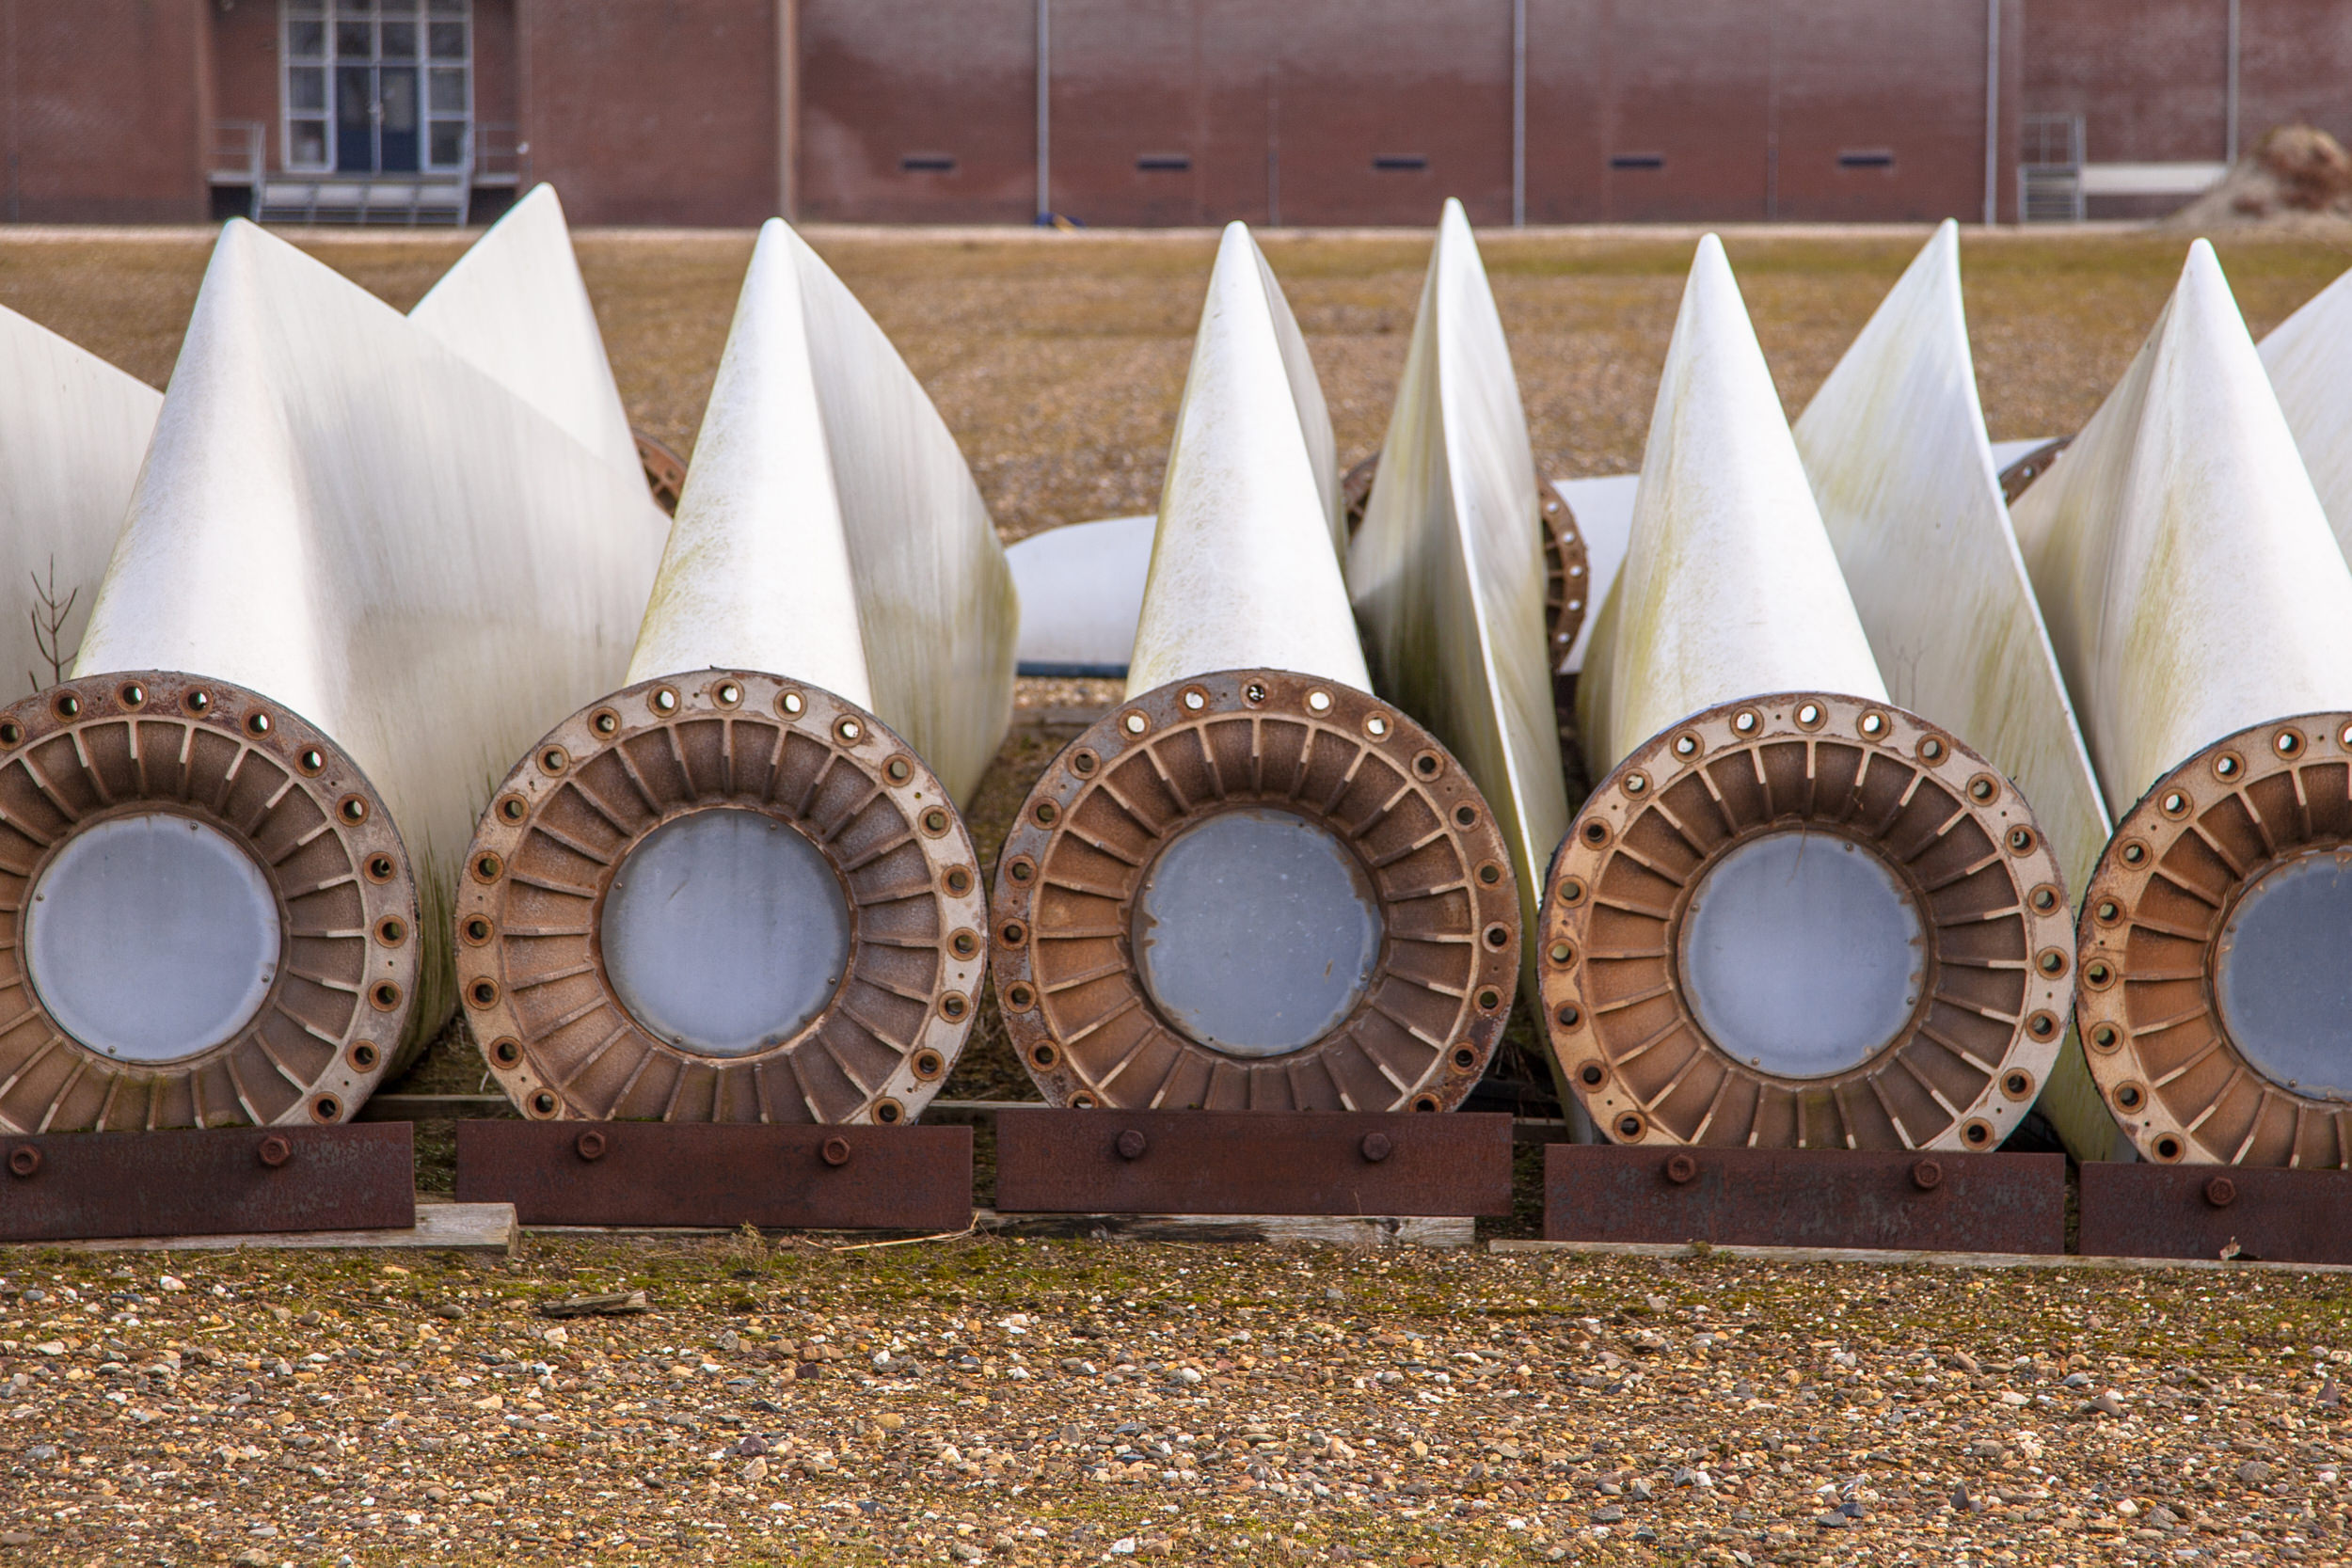 Steam to Value Stream wind turbines. © National Composites Centre.